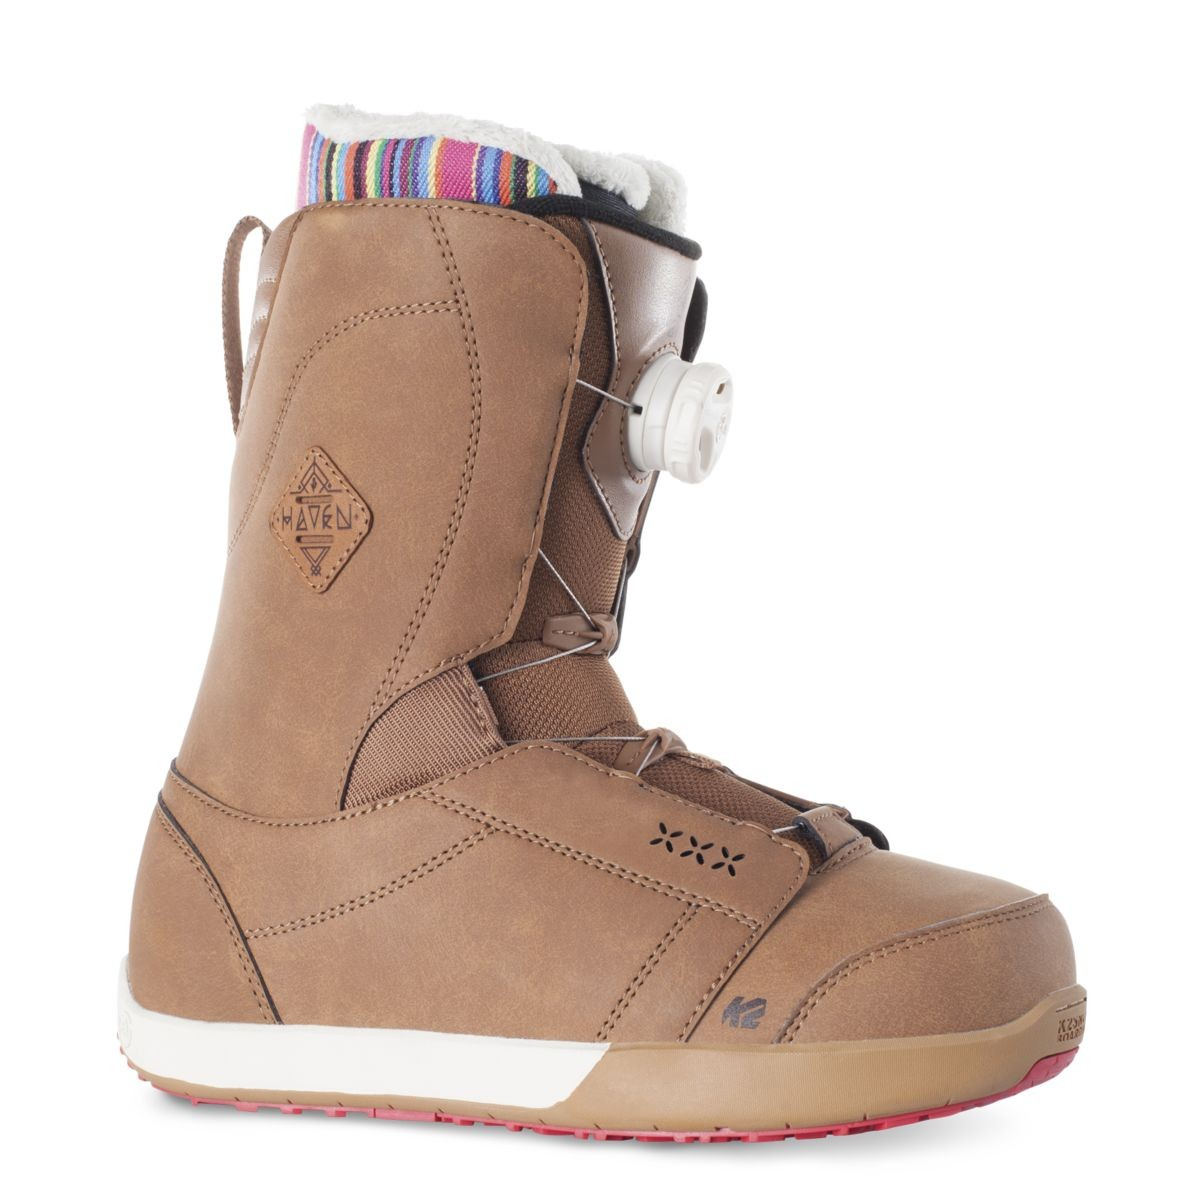 k2 s snowboard boots 2015 brown